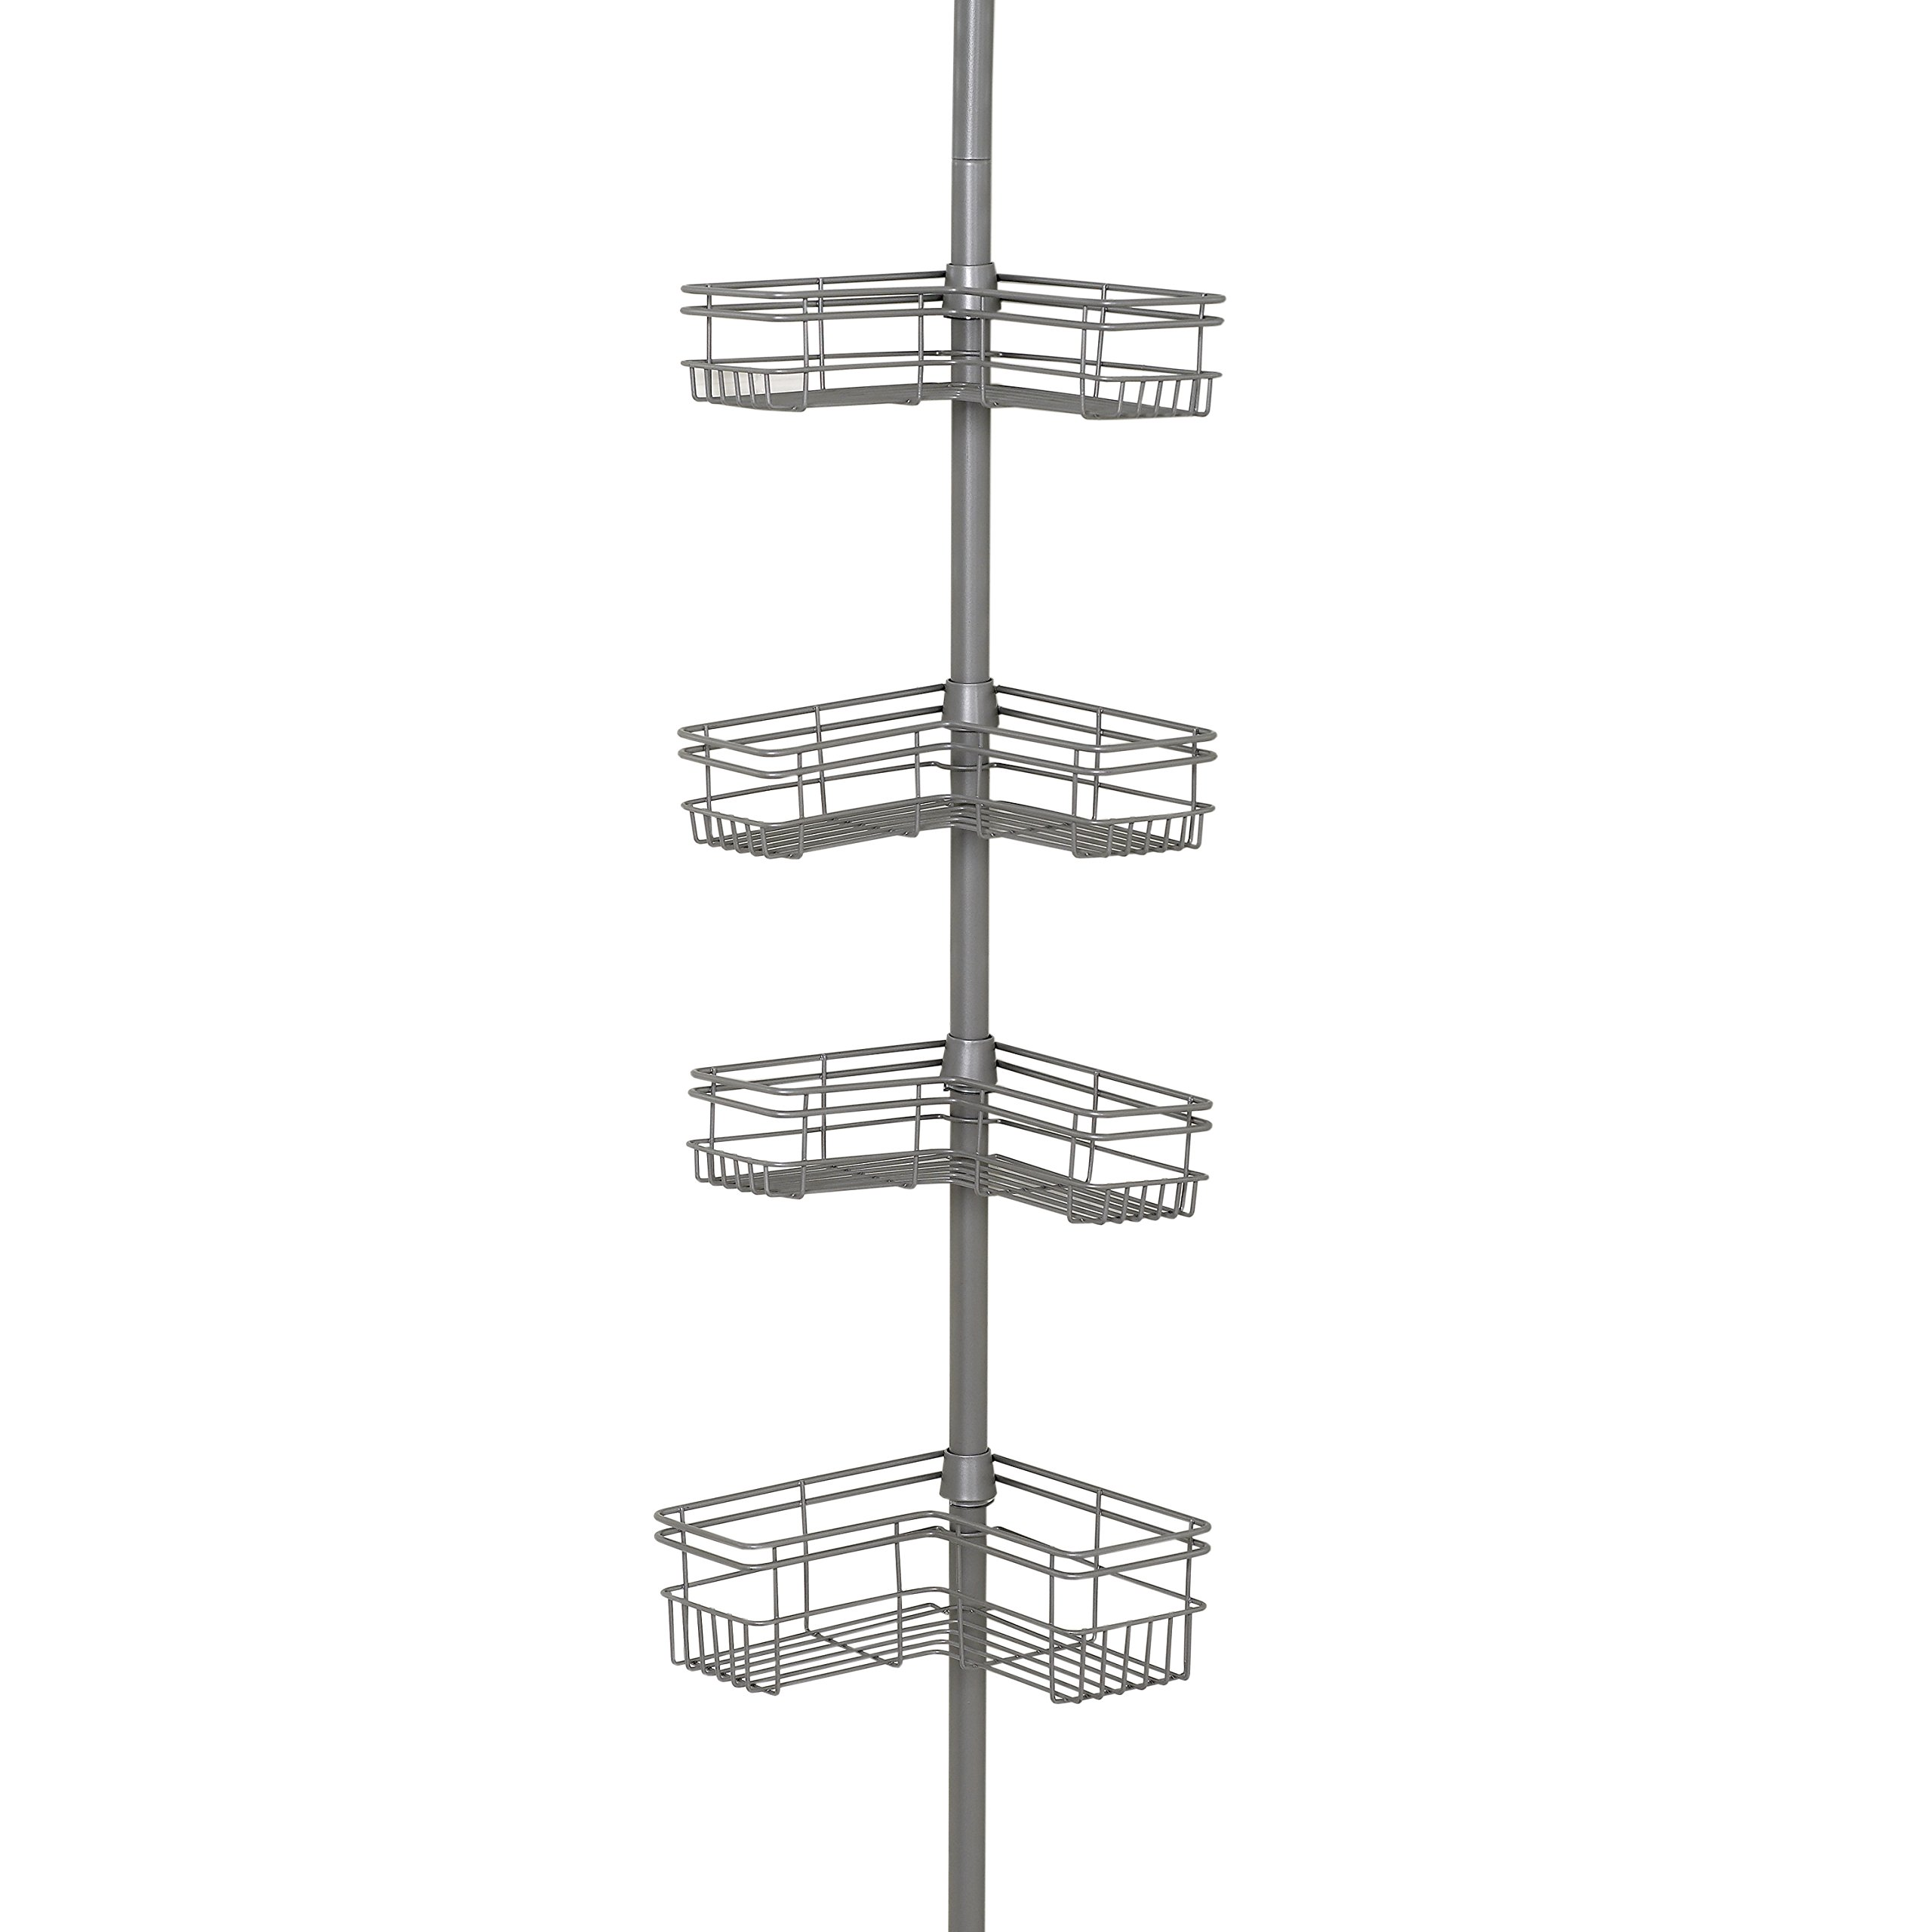 Zenna Home 2130NN, Tension Corner Pole Caddy, Satin Nickel by Zenna Home